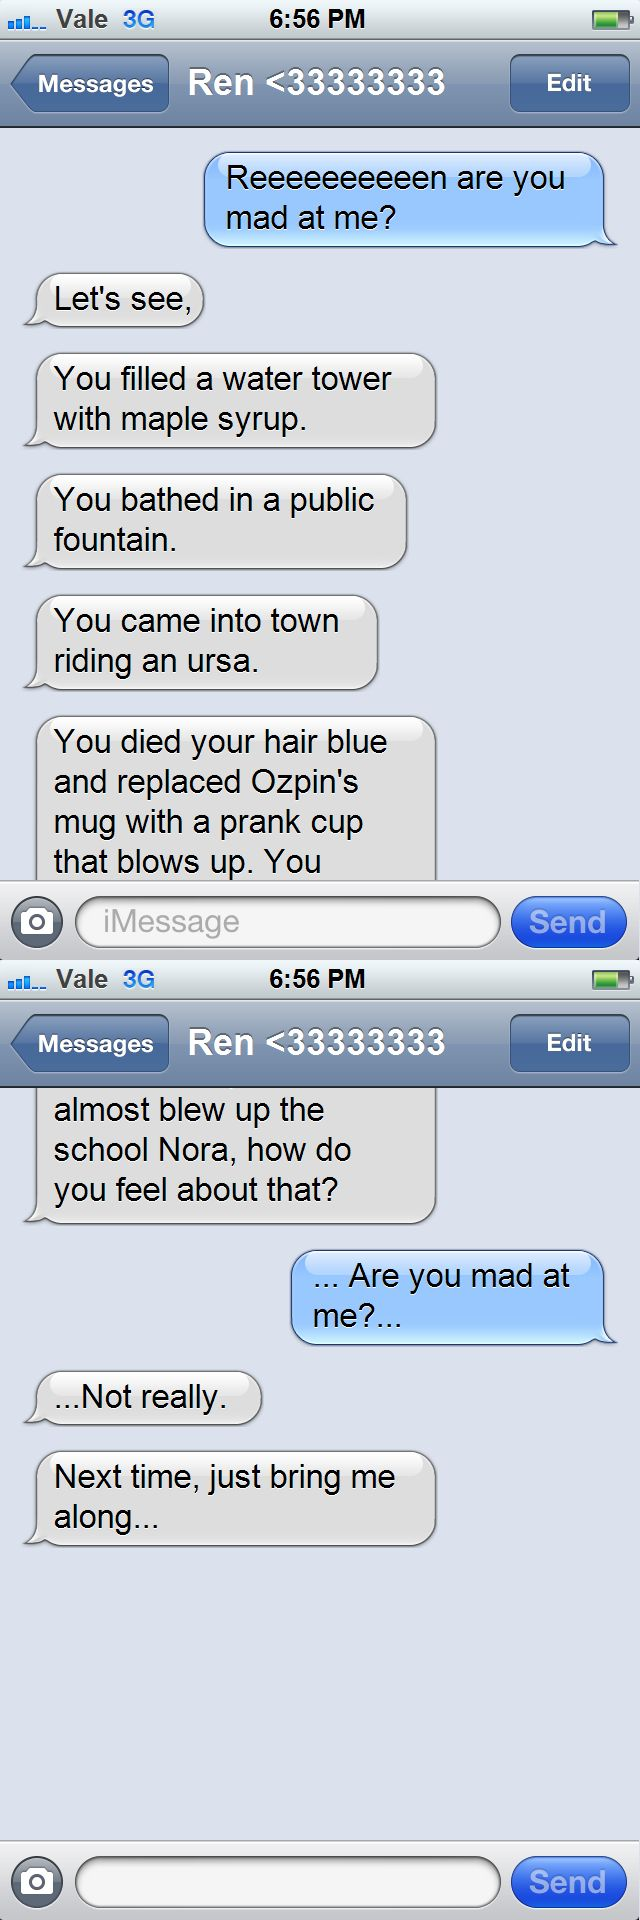 i could actually picture this as something that they would text about if they did so in rwby lol